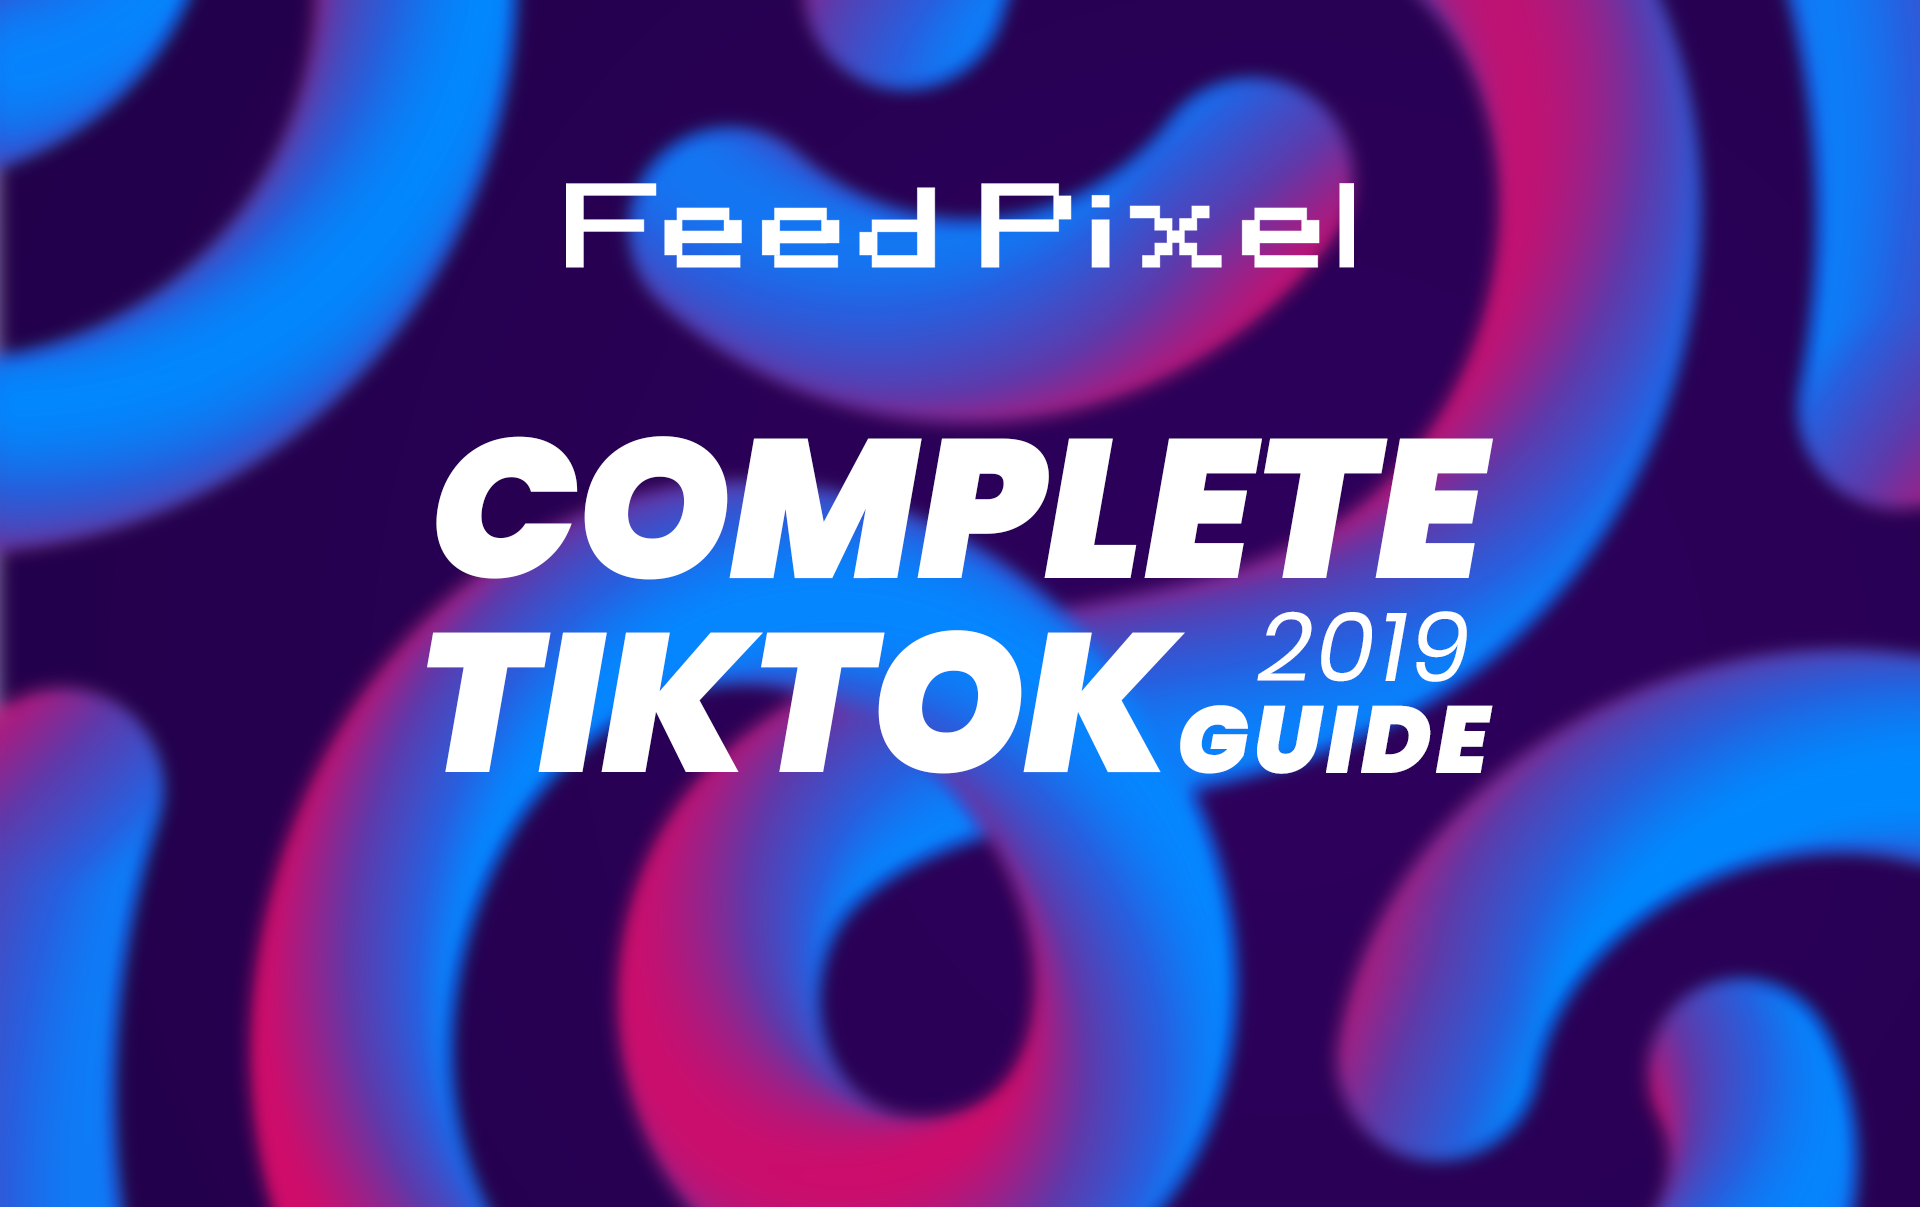 How to Use TikTok [The Complete Guide to TikTok]